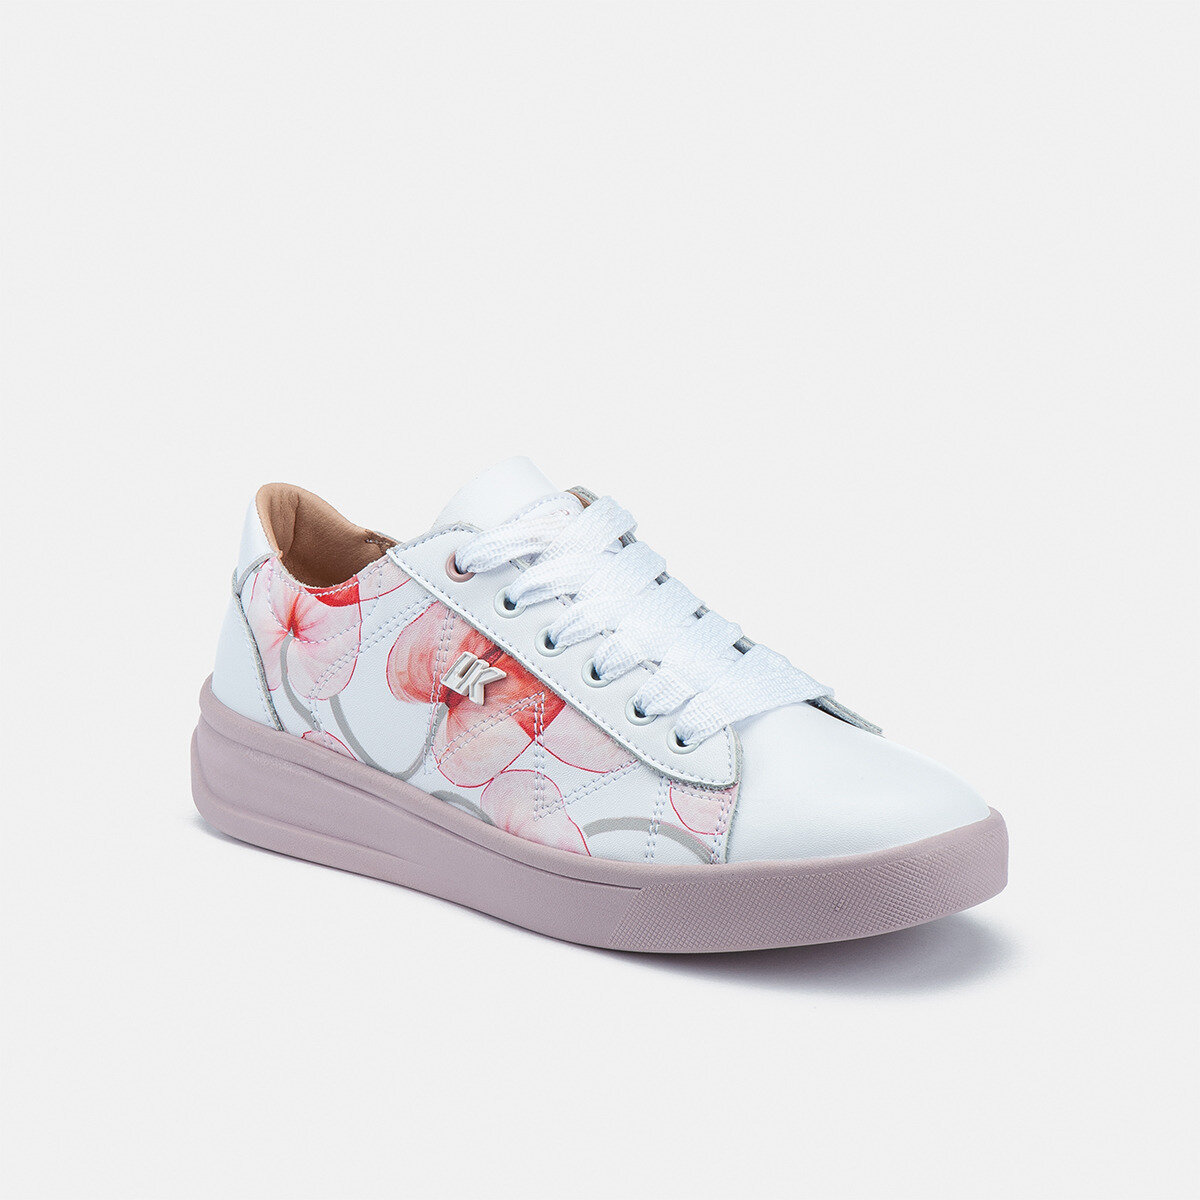 HAWK WHITE/VIOLET ICE Woman Sneakers